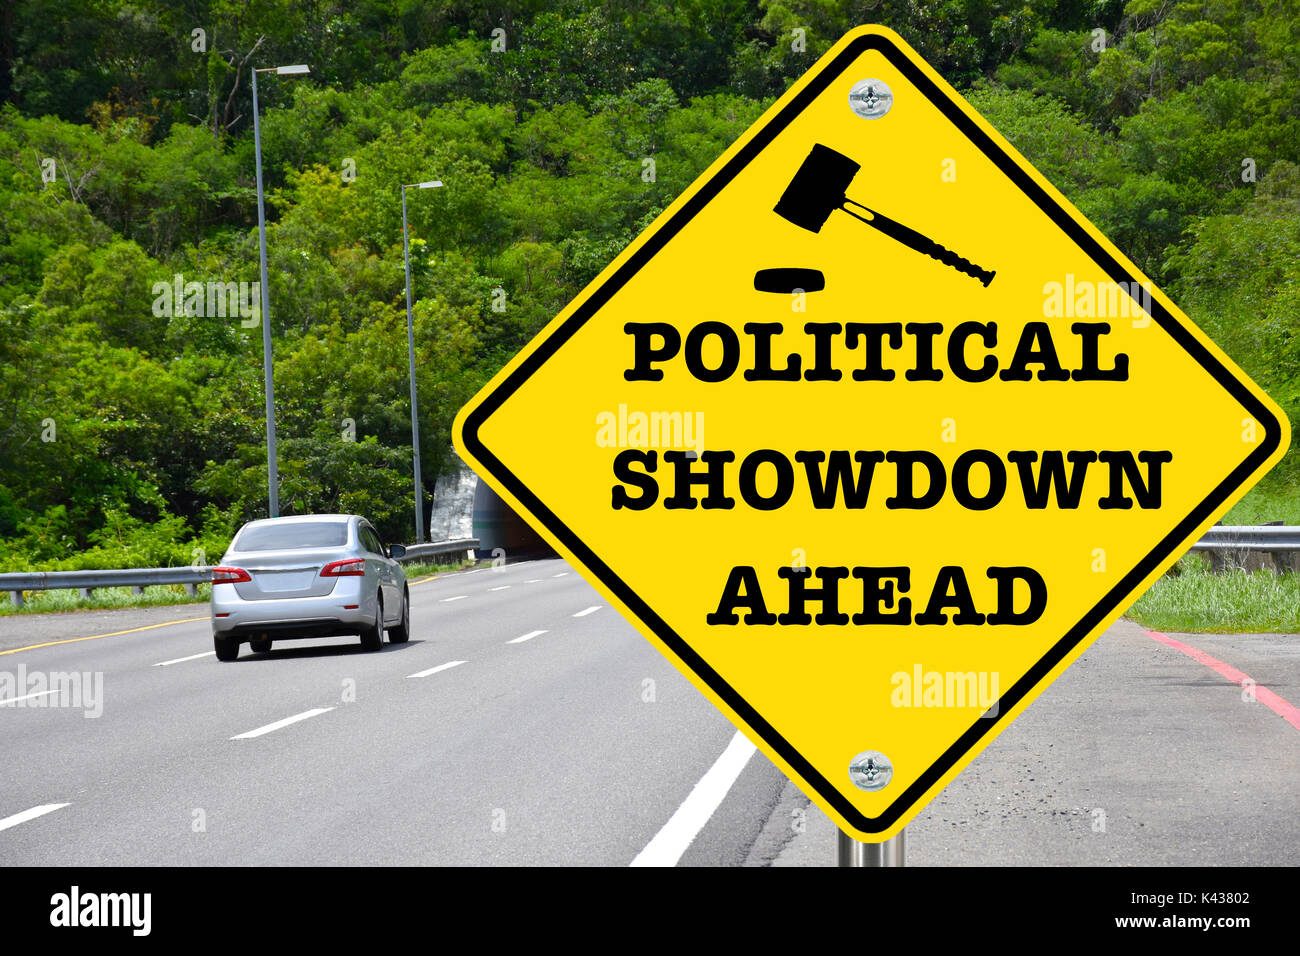 Political showdown ahead, yellow warning road sign - Stock Image